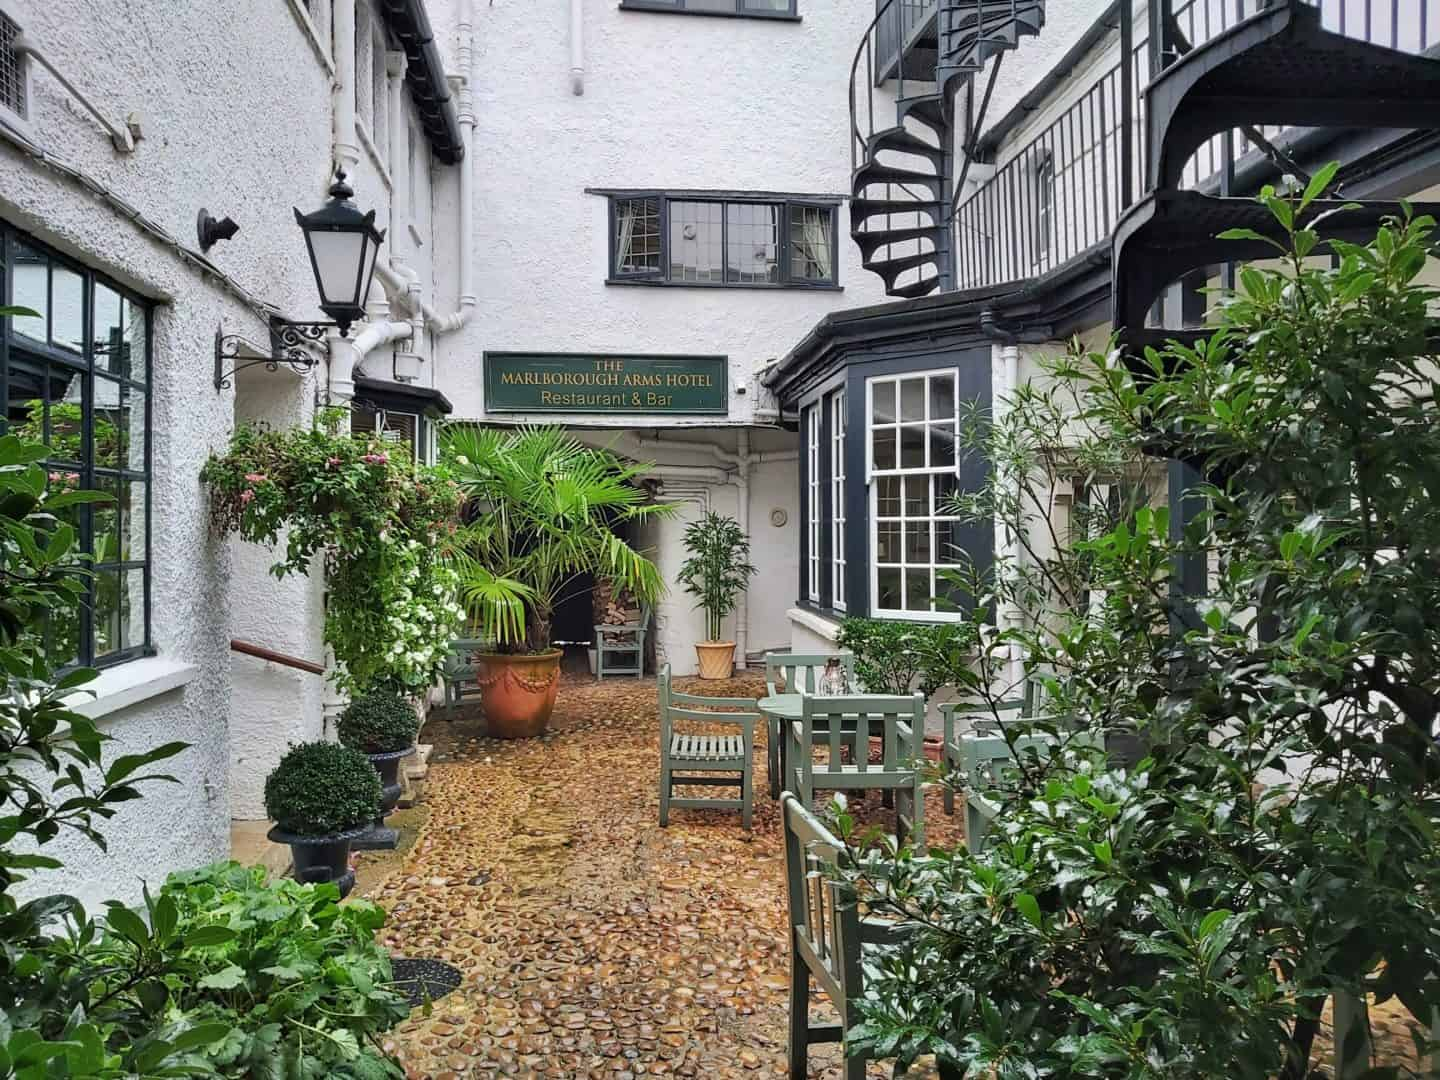 Courtyard of Marlborough Arms, Cotswolds UK